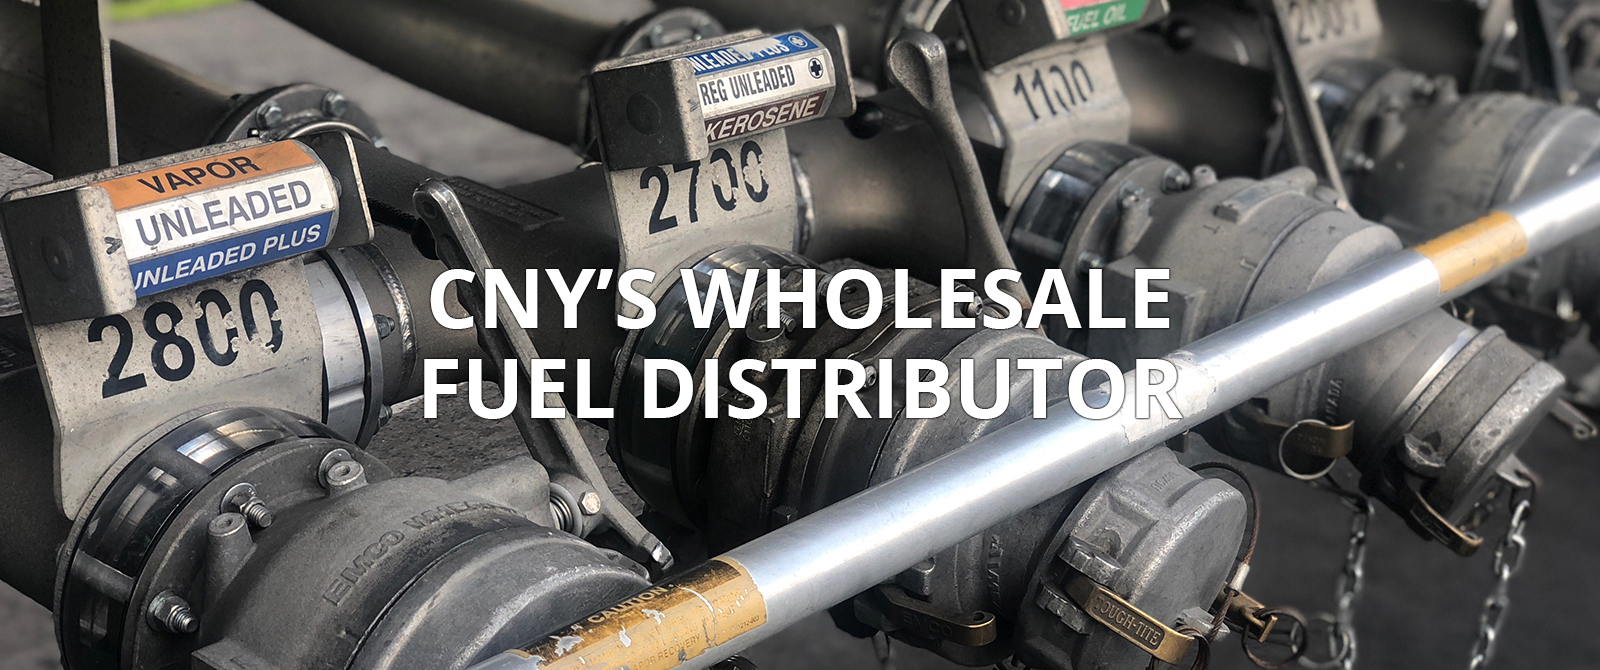 cny's wholesale fuel distributor